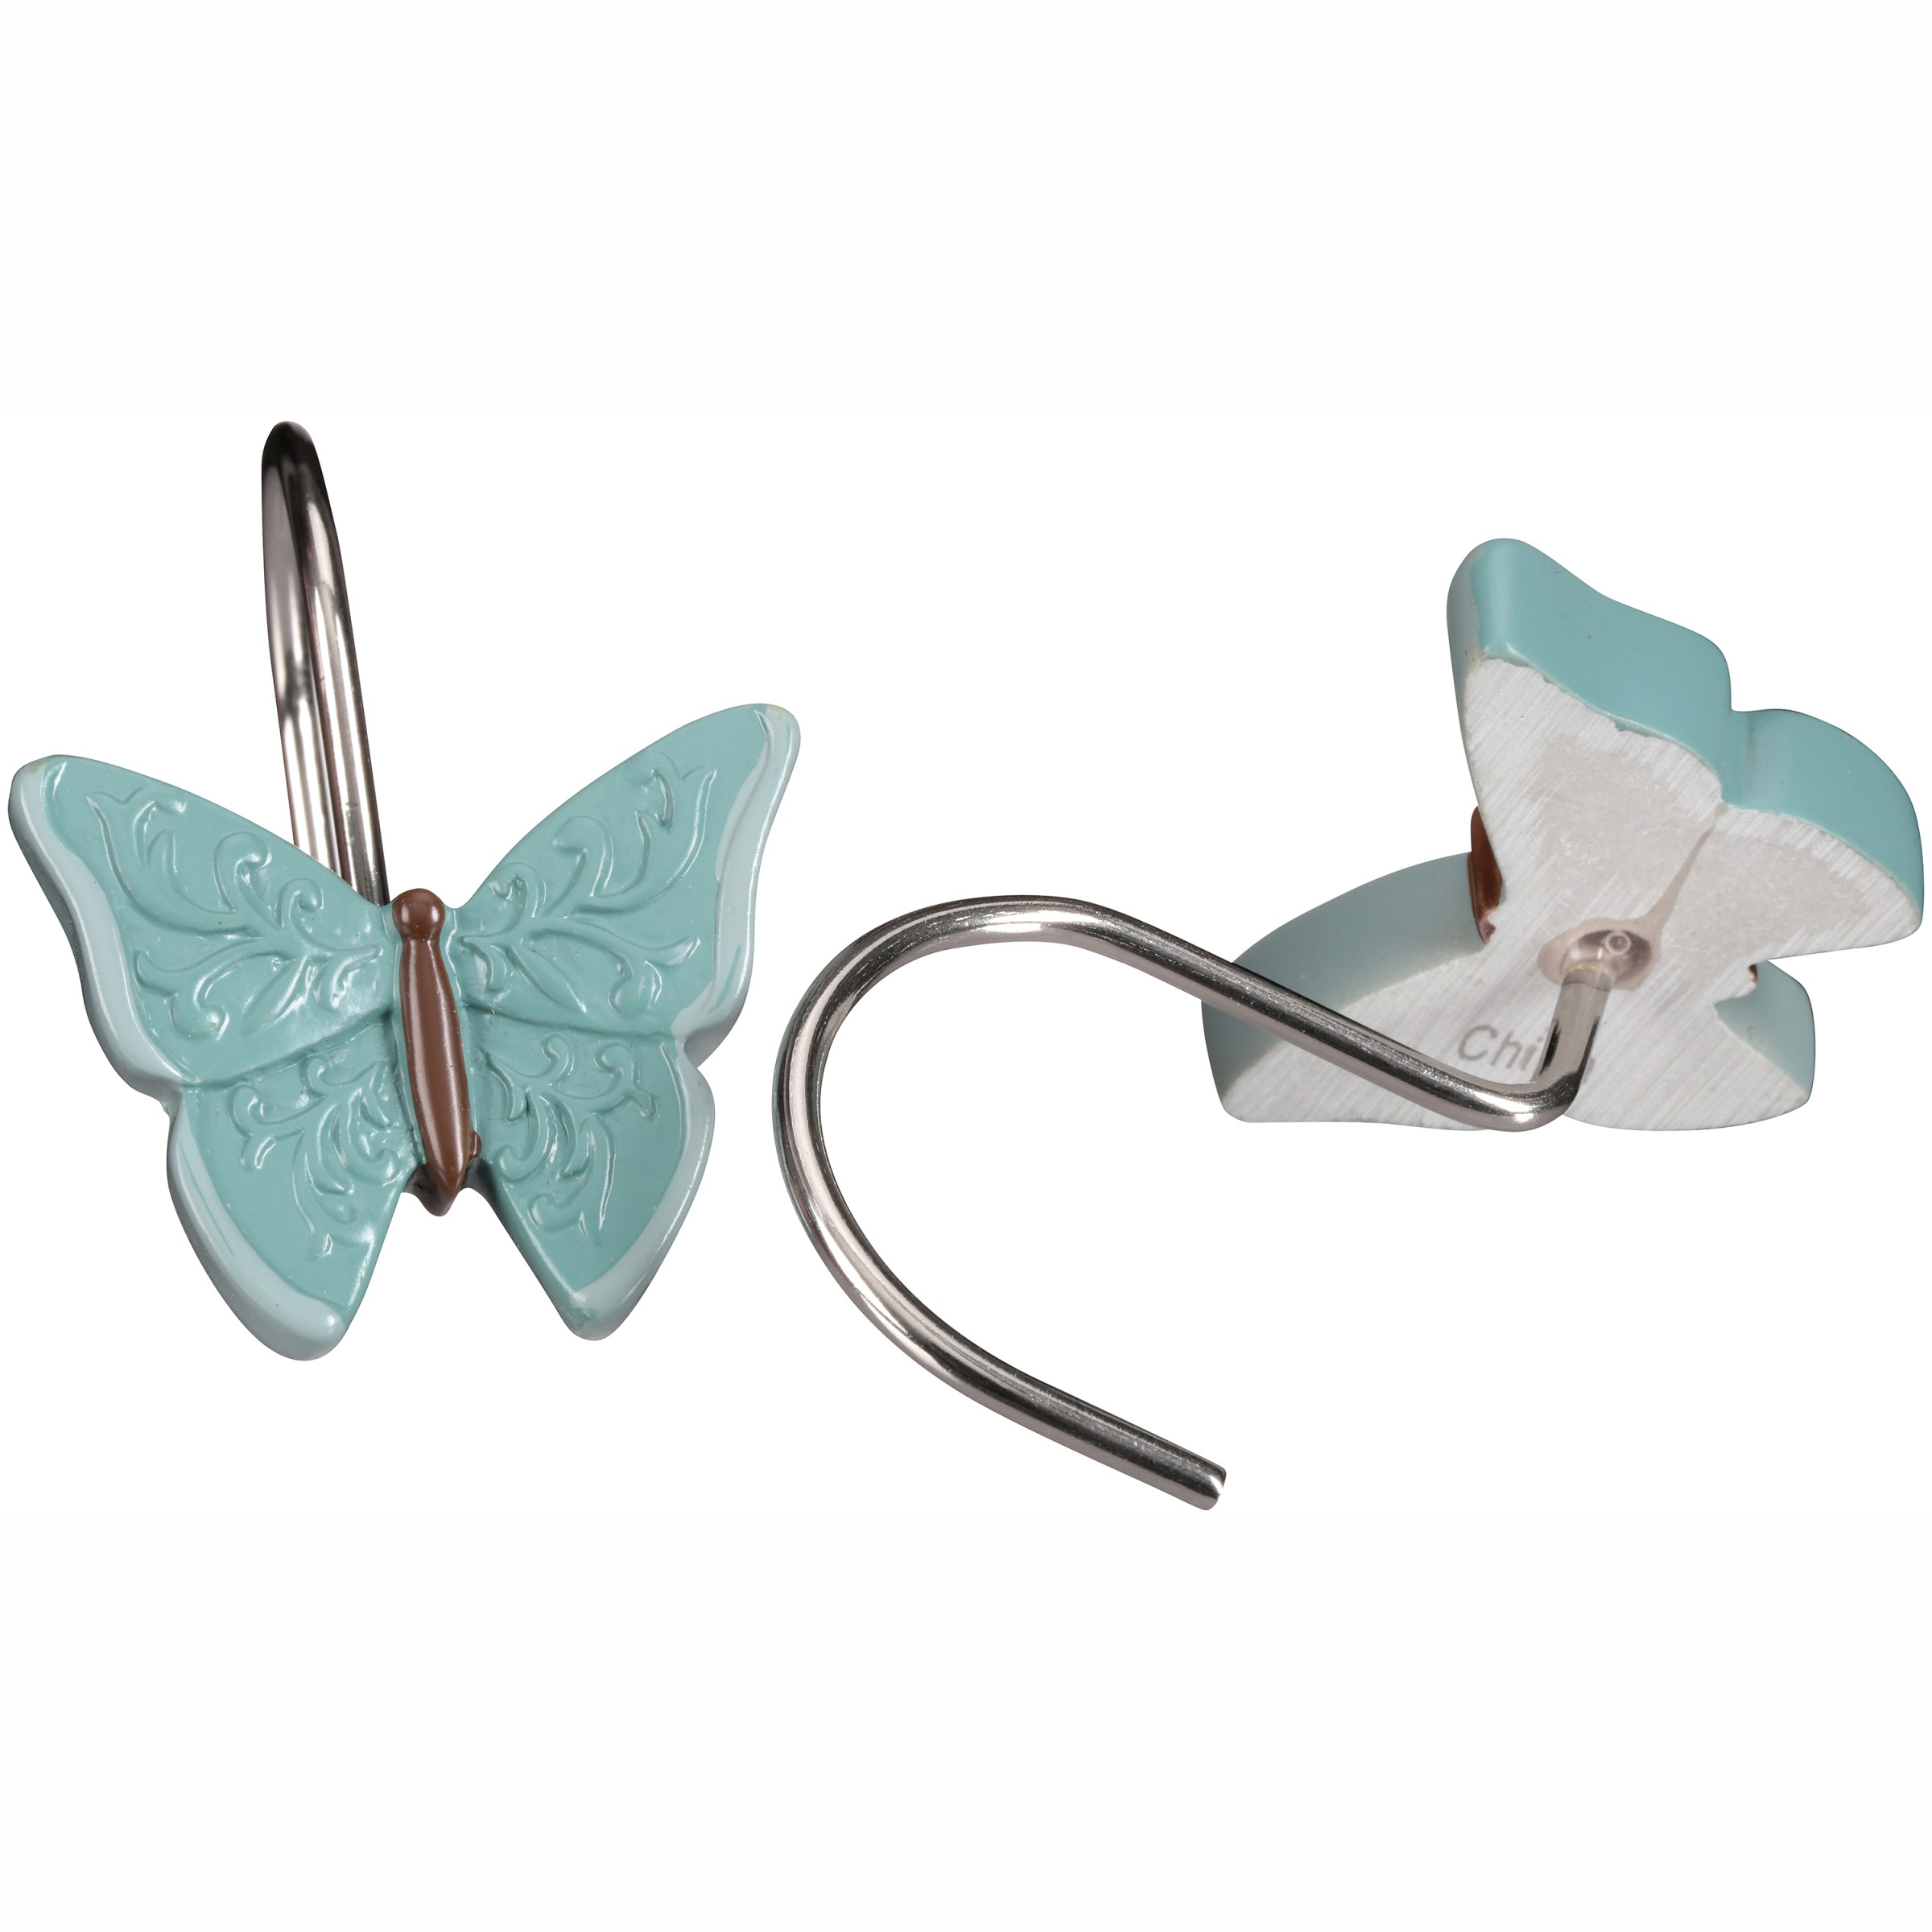 Mainstays™ Butterfly Blessings/Cream Shower Hooks 12 ct. Box